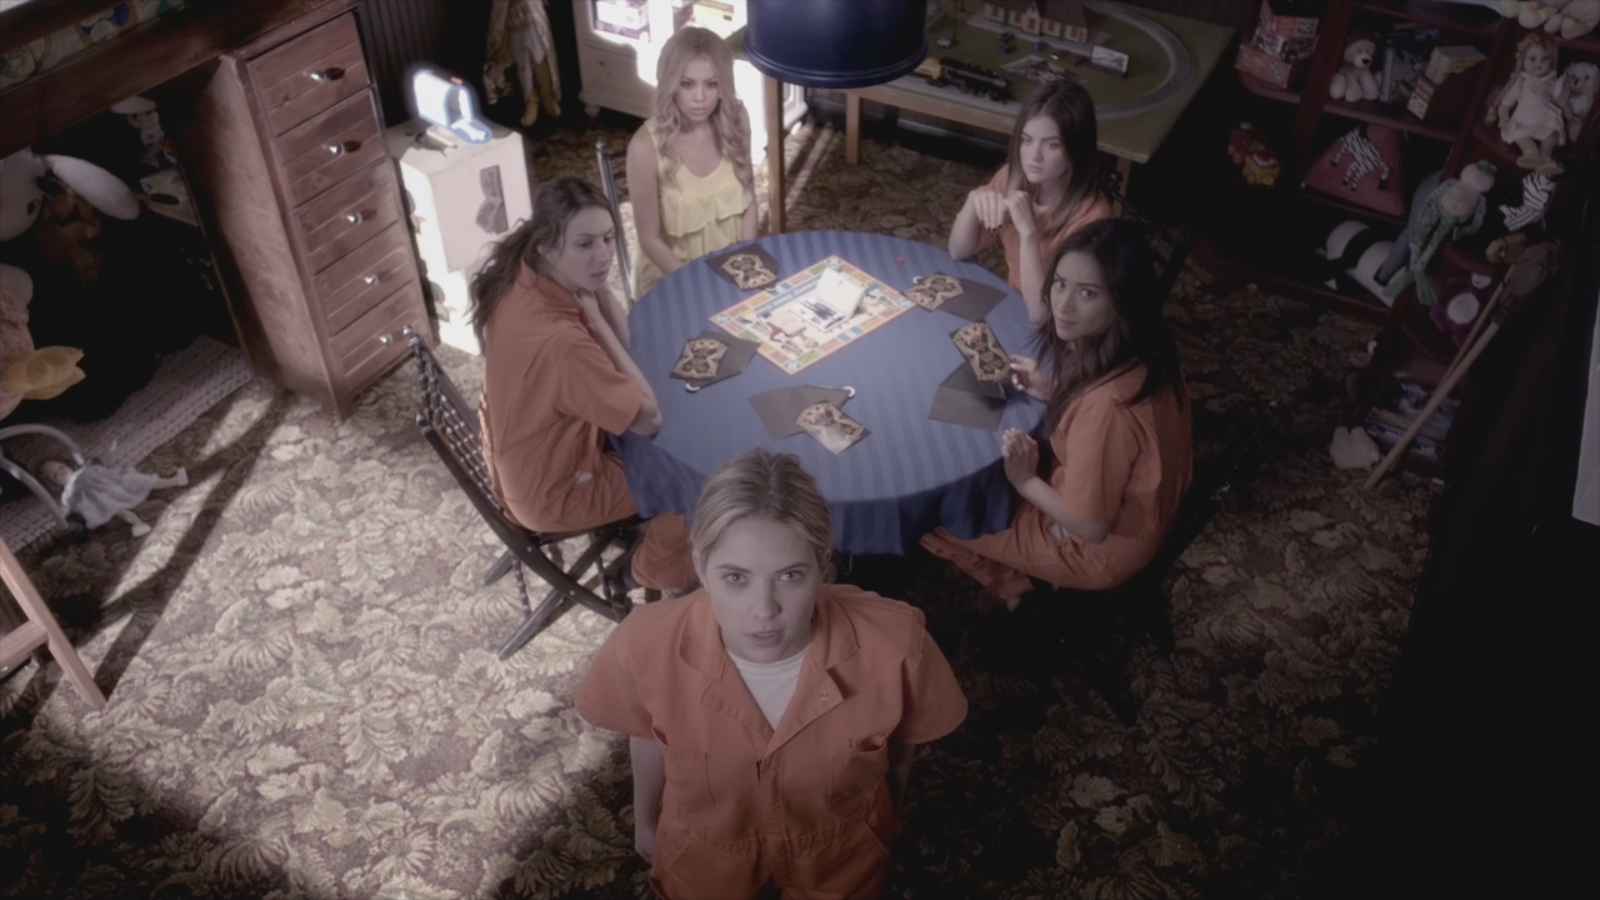 Pretty little liars quot recap 6 01 escape from the dollhouse page 7 - I Wish I Never Read That Spoiler Leak Posted On This Site A Few Weeks Ago Because The Reveal Of Mona Being Alive Would Have Totally Shocked Me To My Core